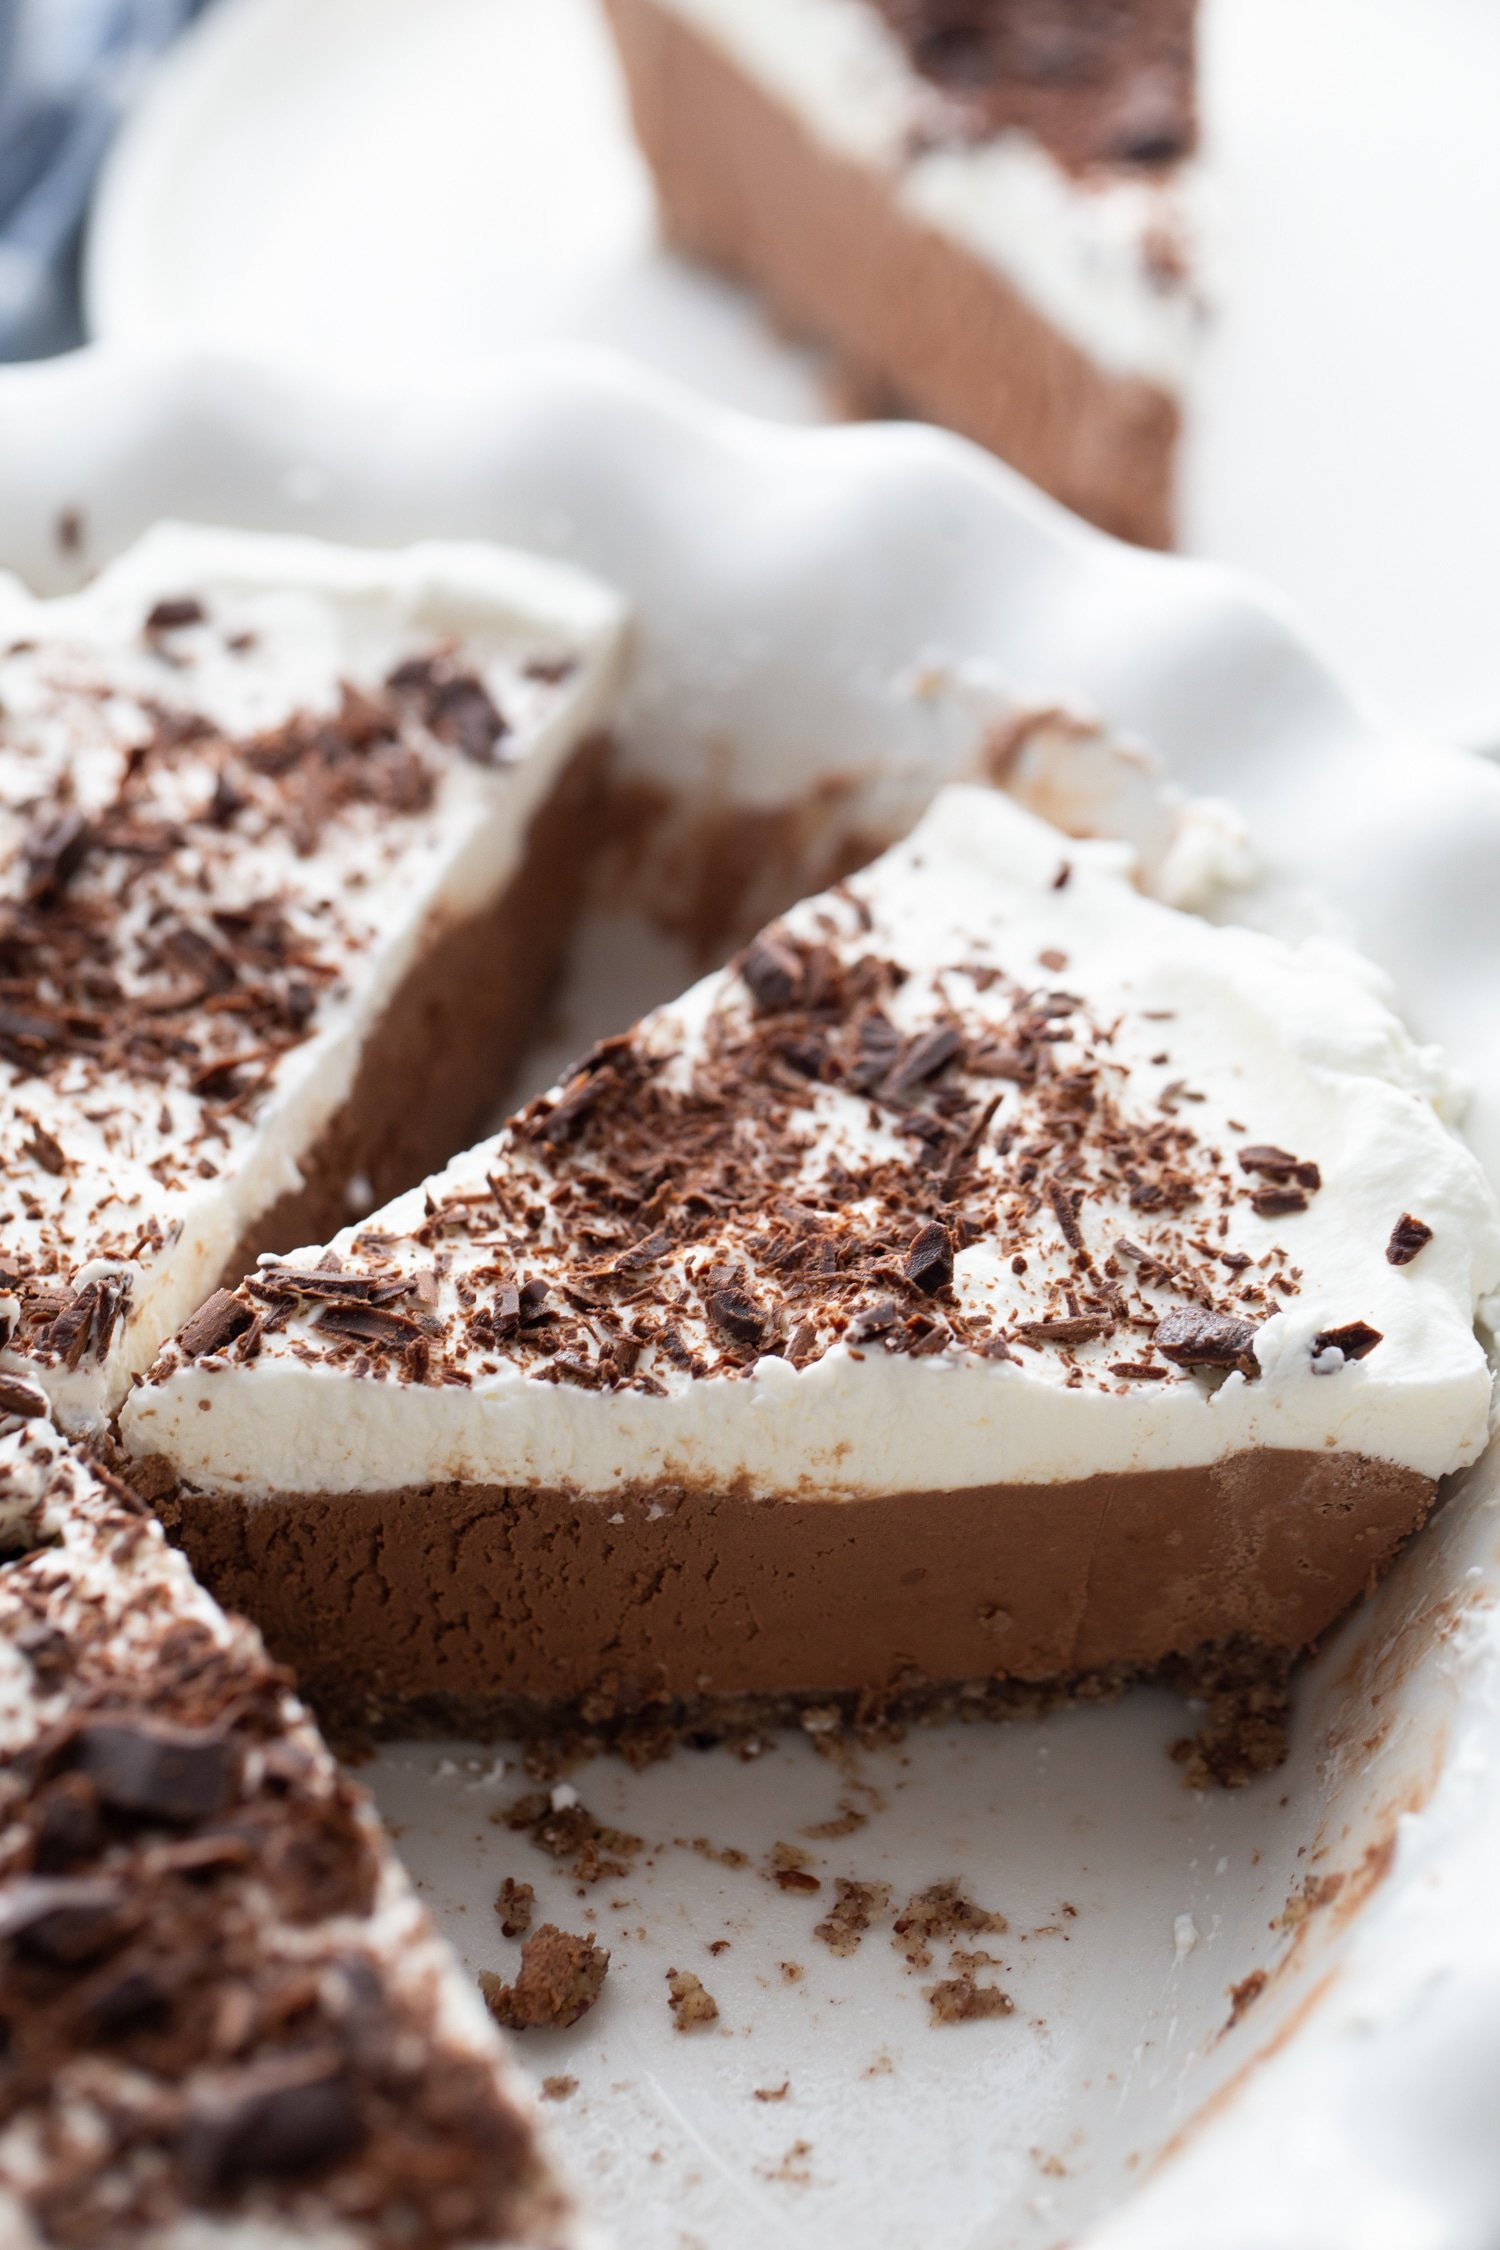 keto chocolate mousse slice with chocolate shavings on top